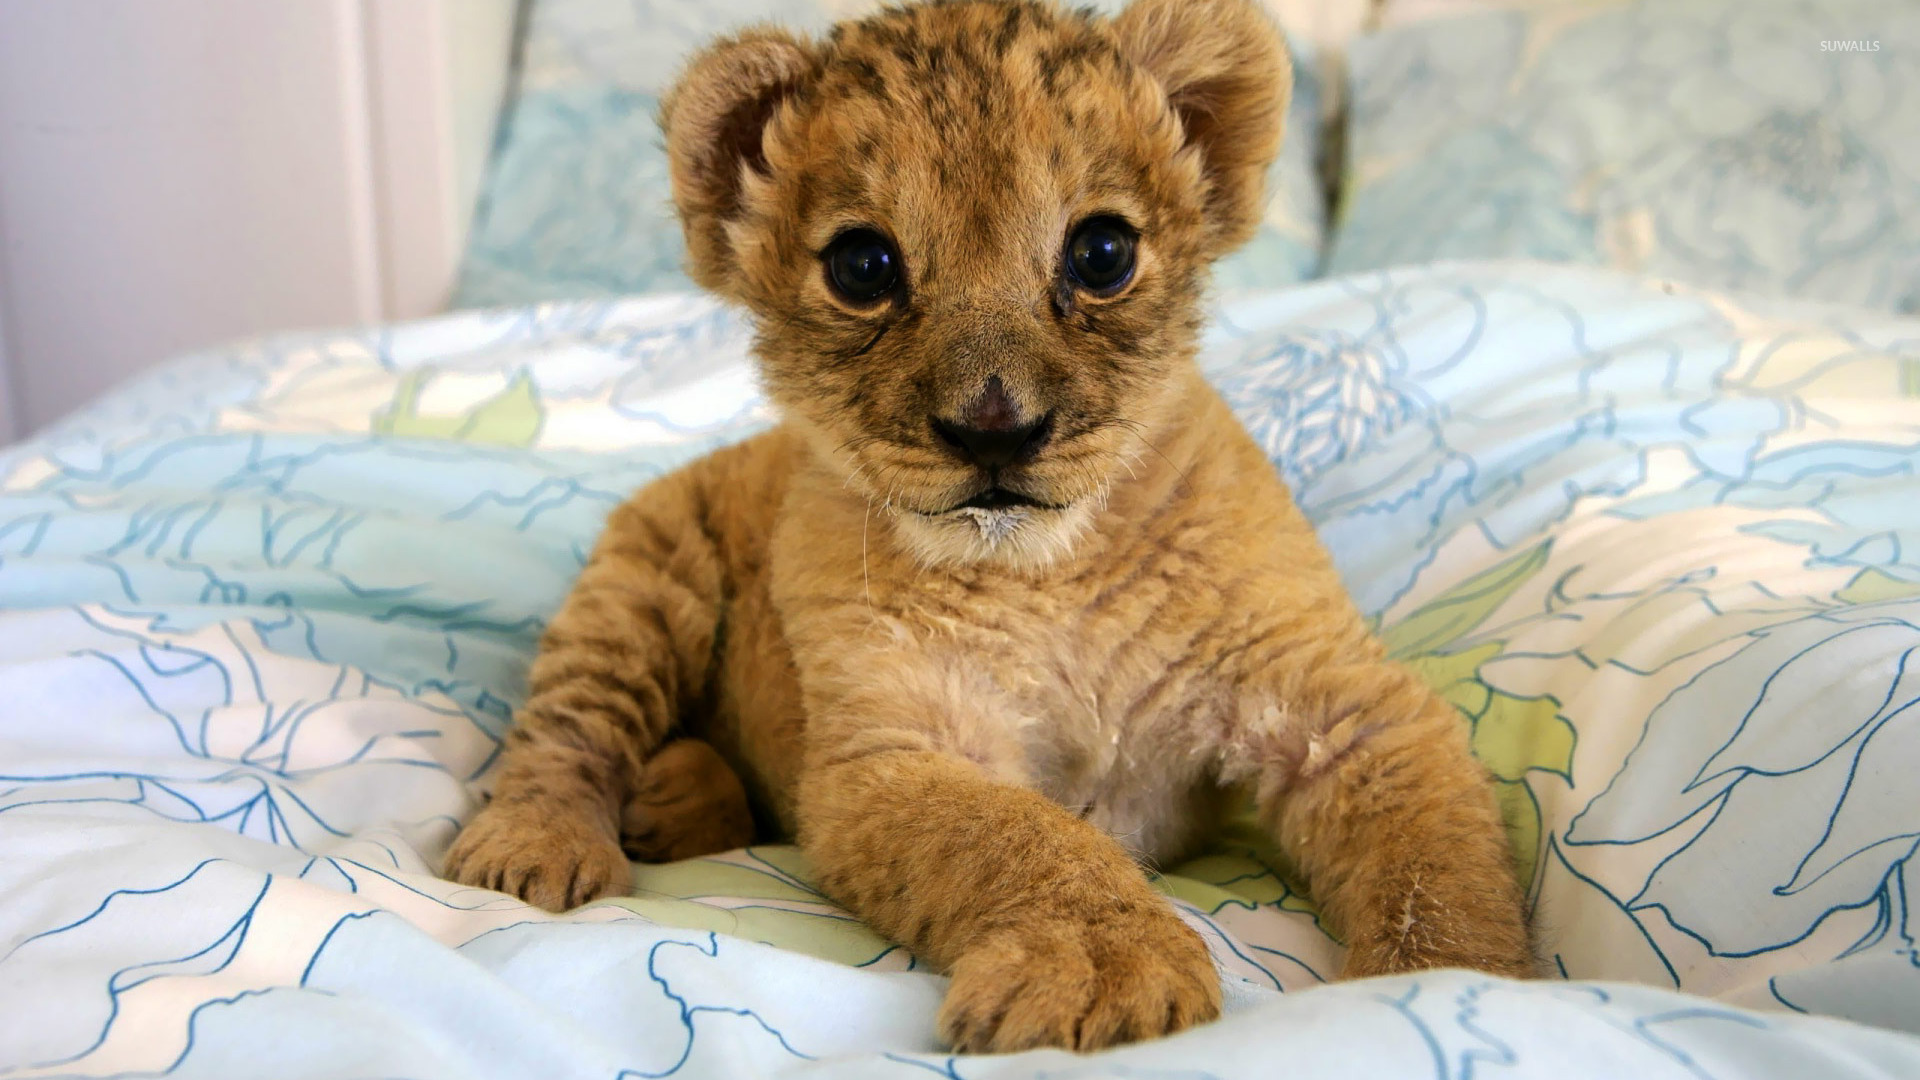 Lion cub wallpaper   Animal wallpapers   19836 1920x1080